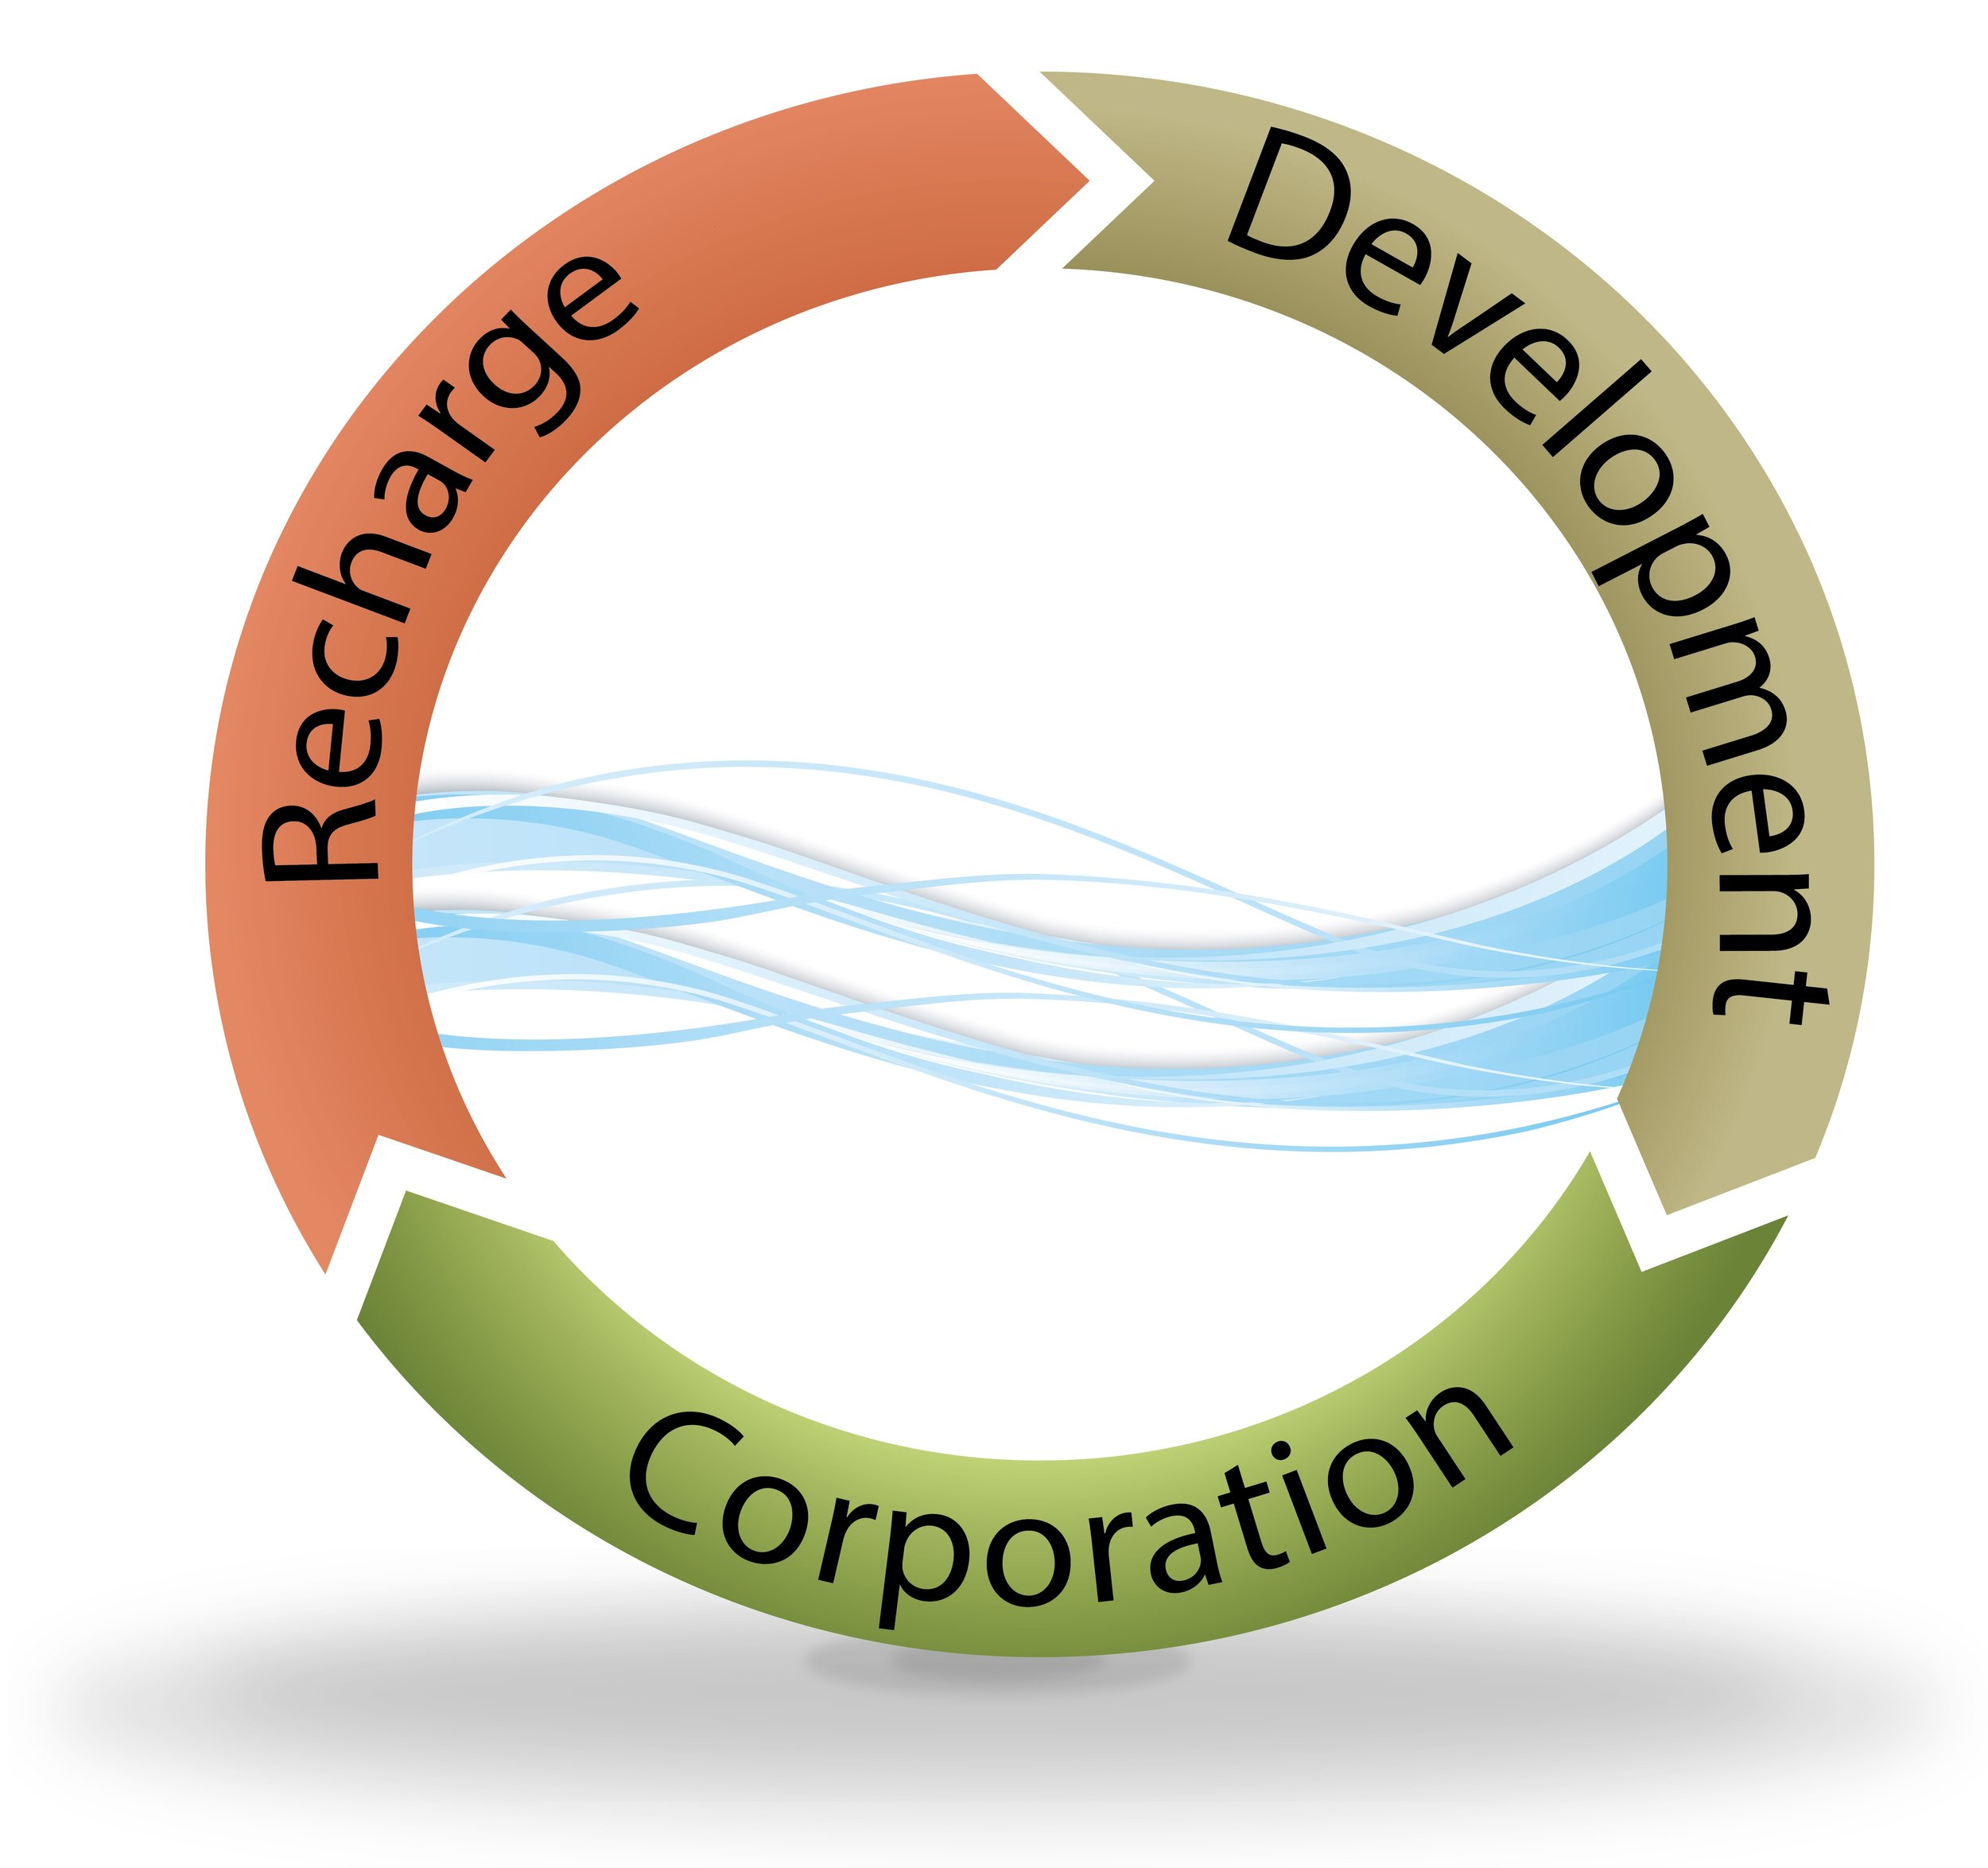 Recharge Development Corporation.jpg